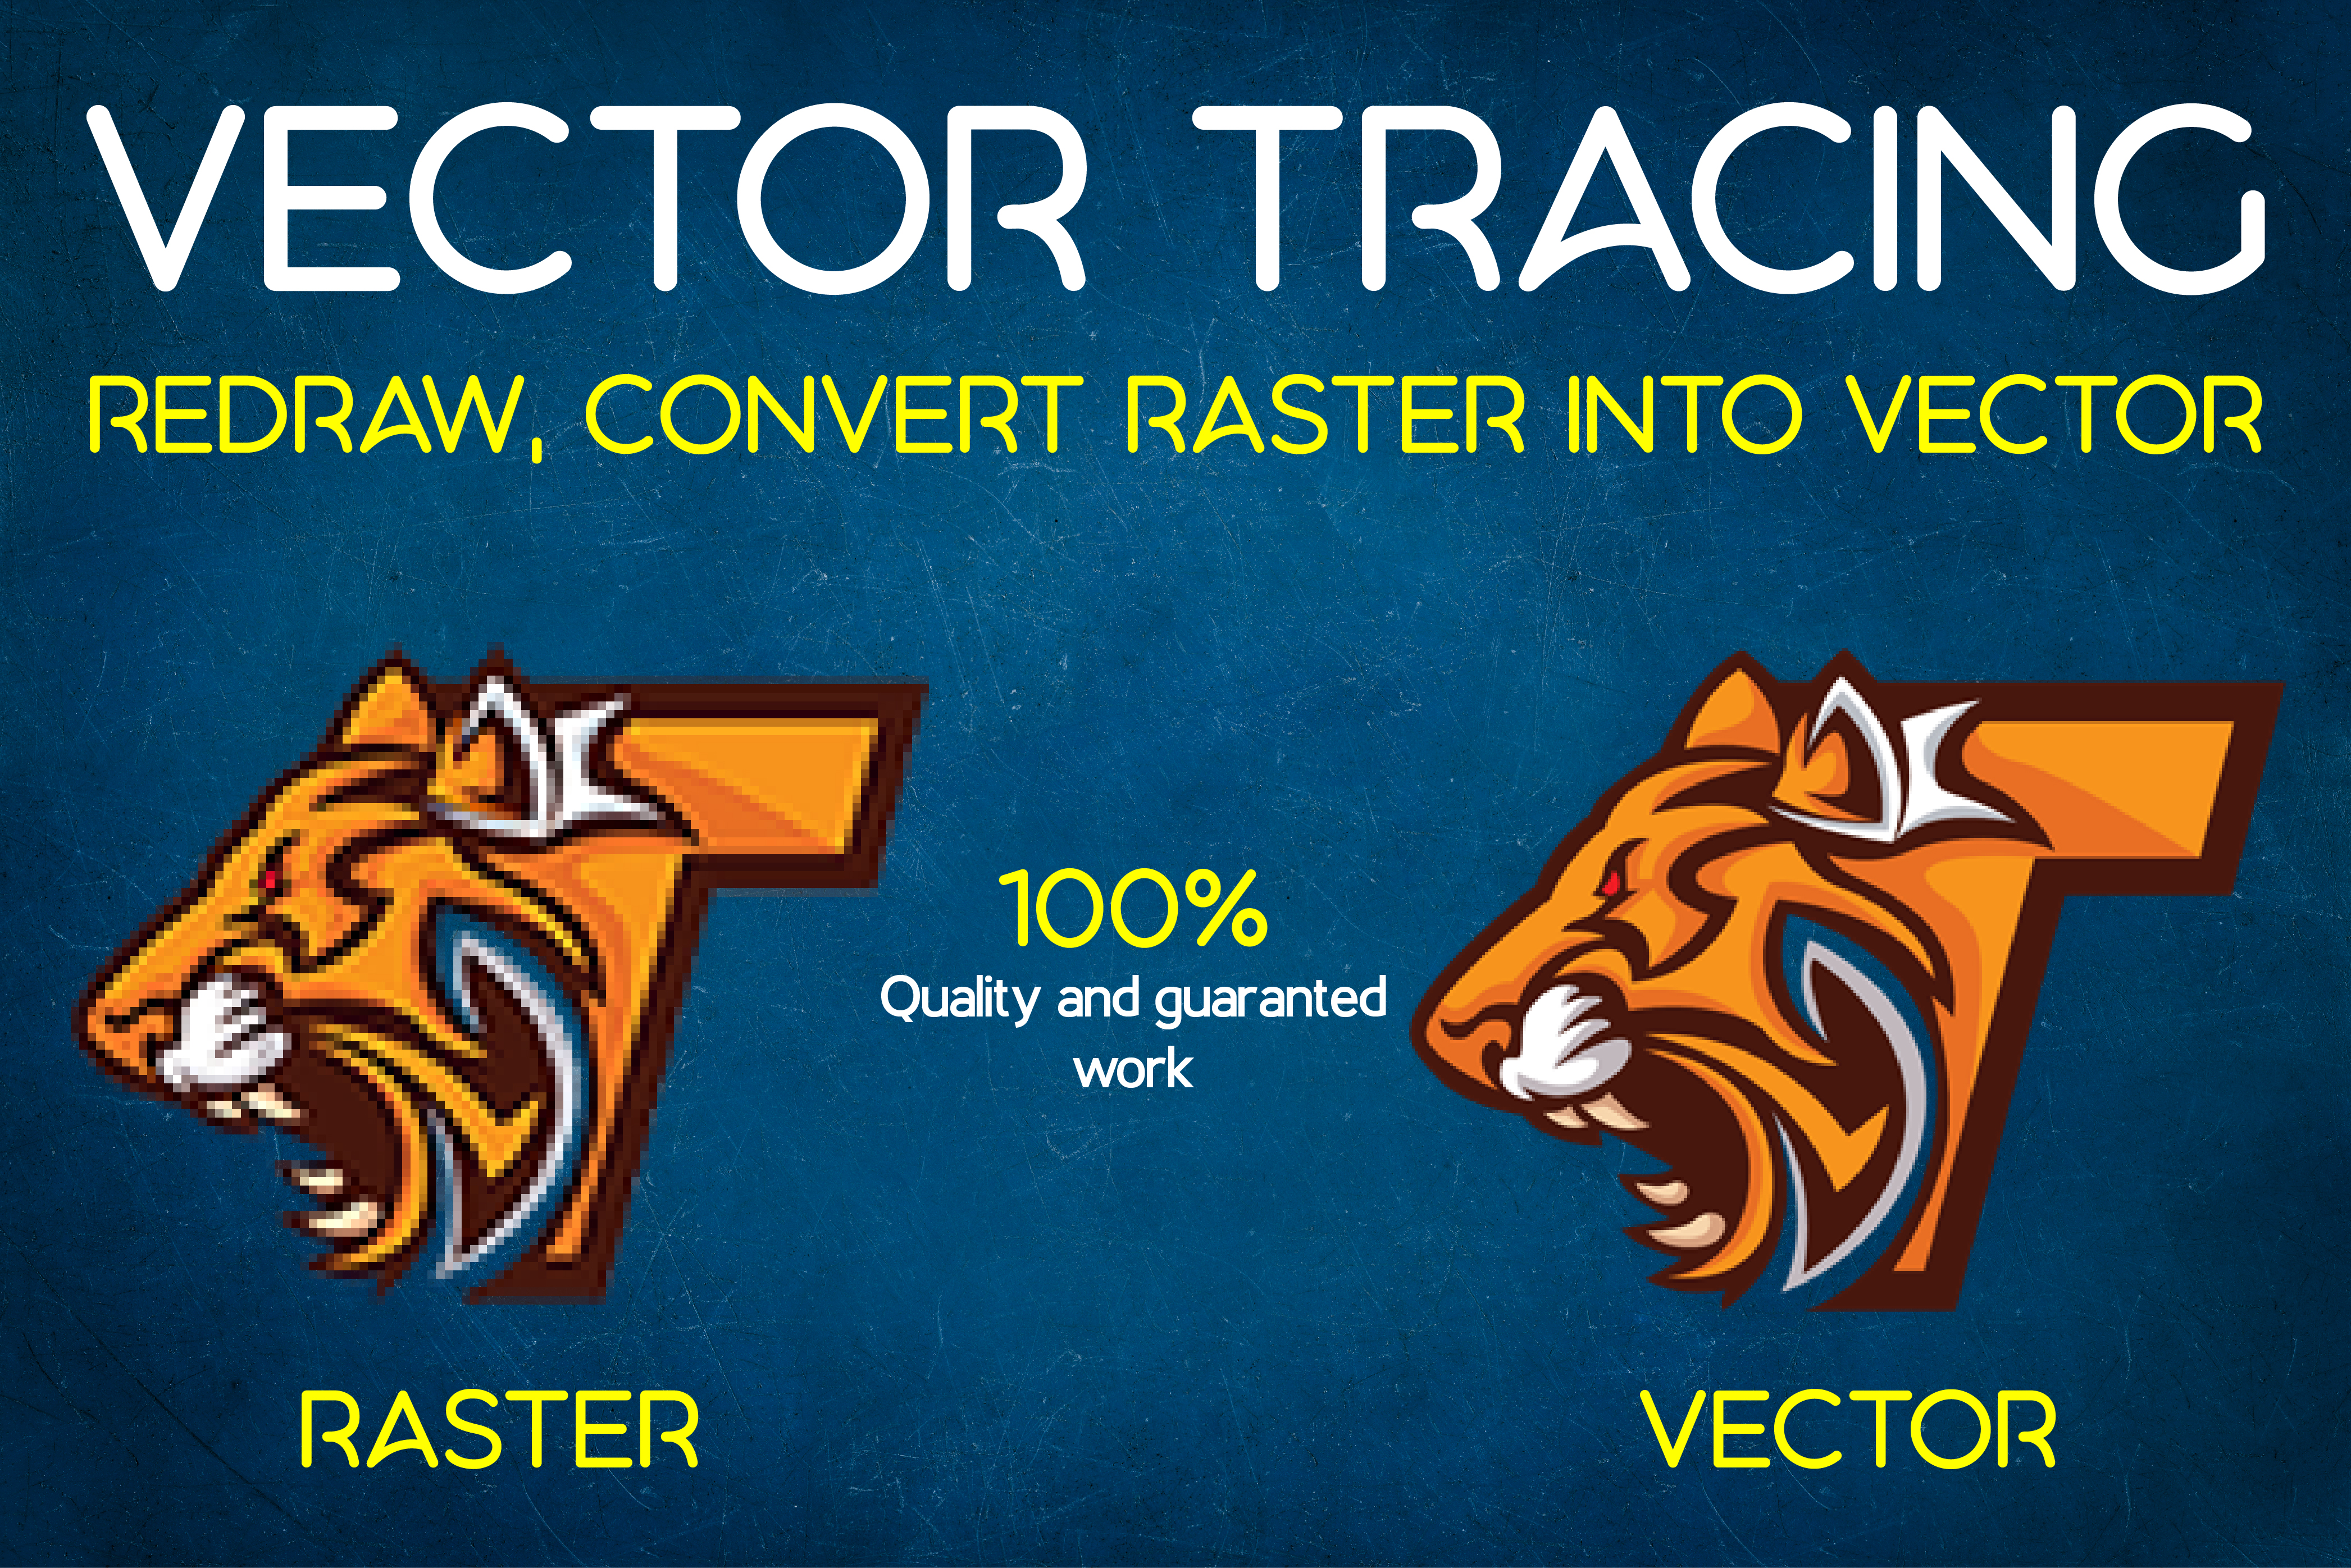 Do vector tracing, redraw and convert raster images into vector